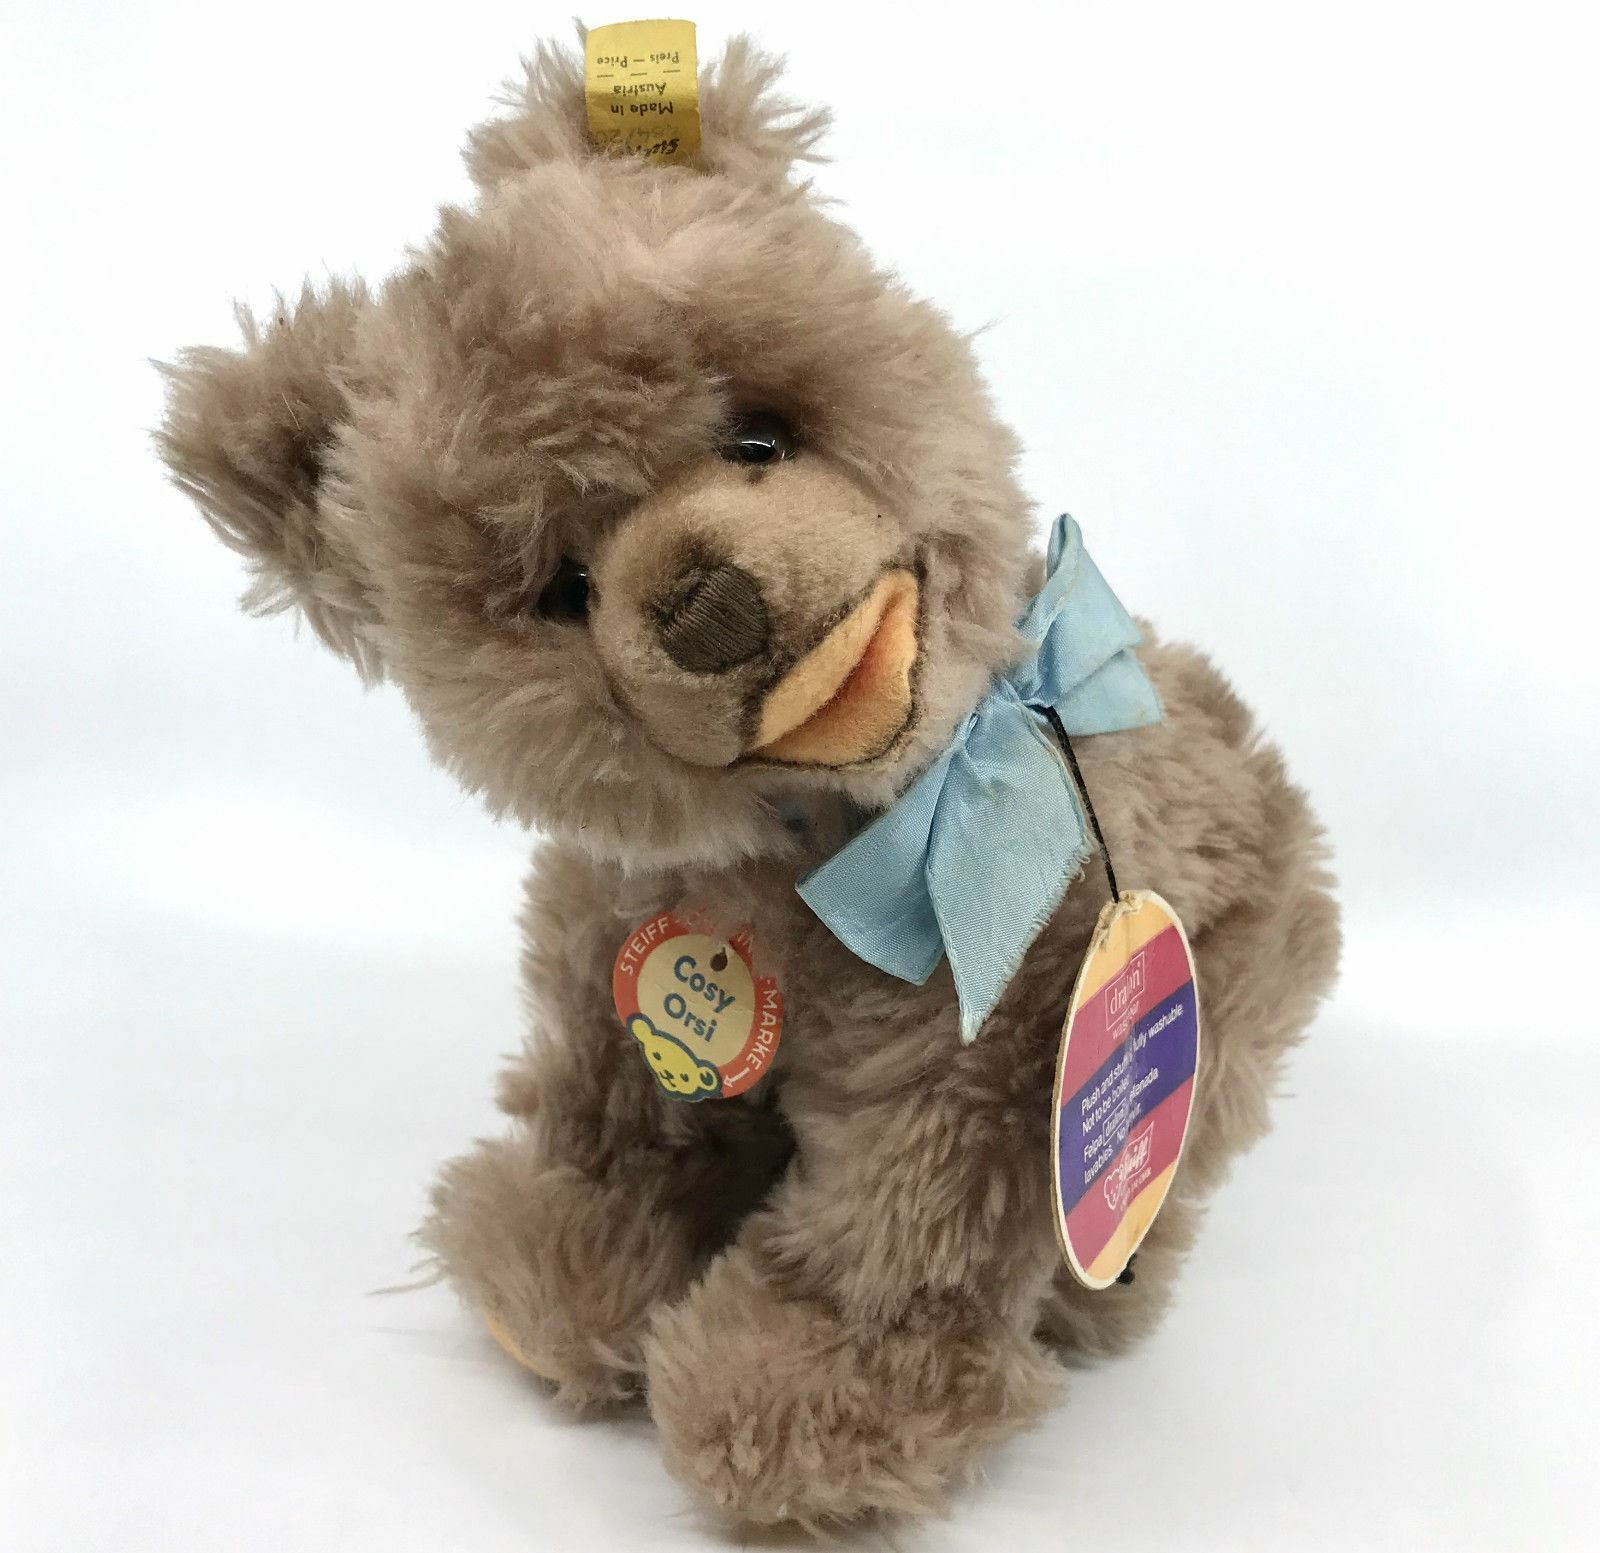 Steiff Cosy Orsi Bear all fours Dralon Plush 20cm 8in ID Button Tags 1968 -78